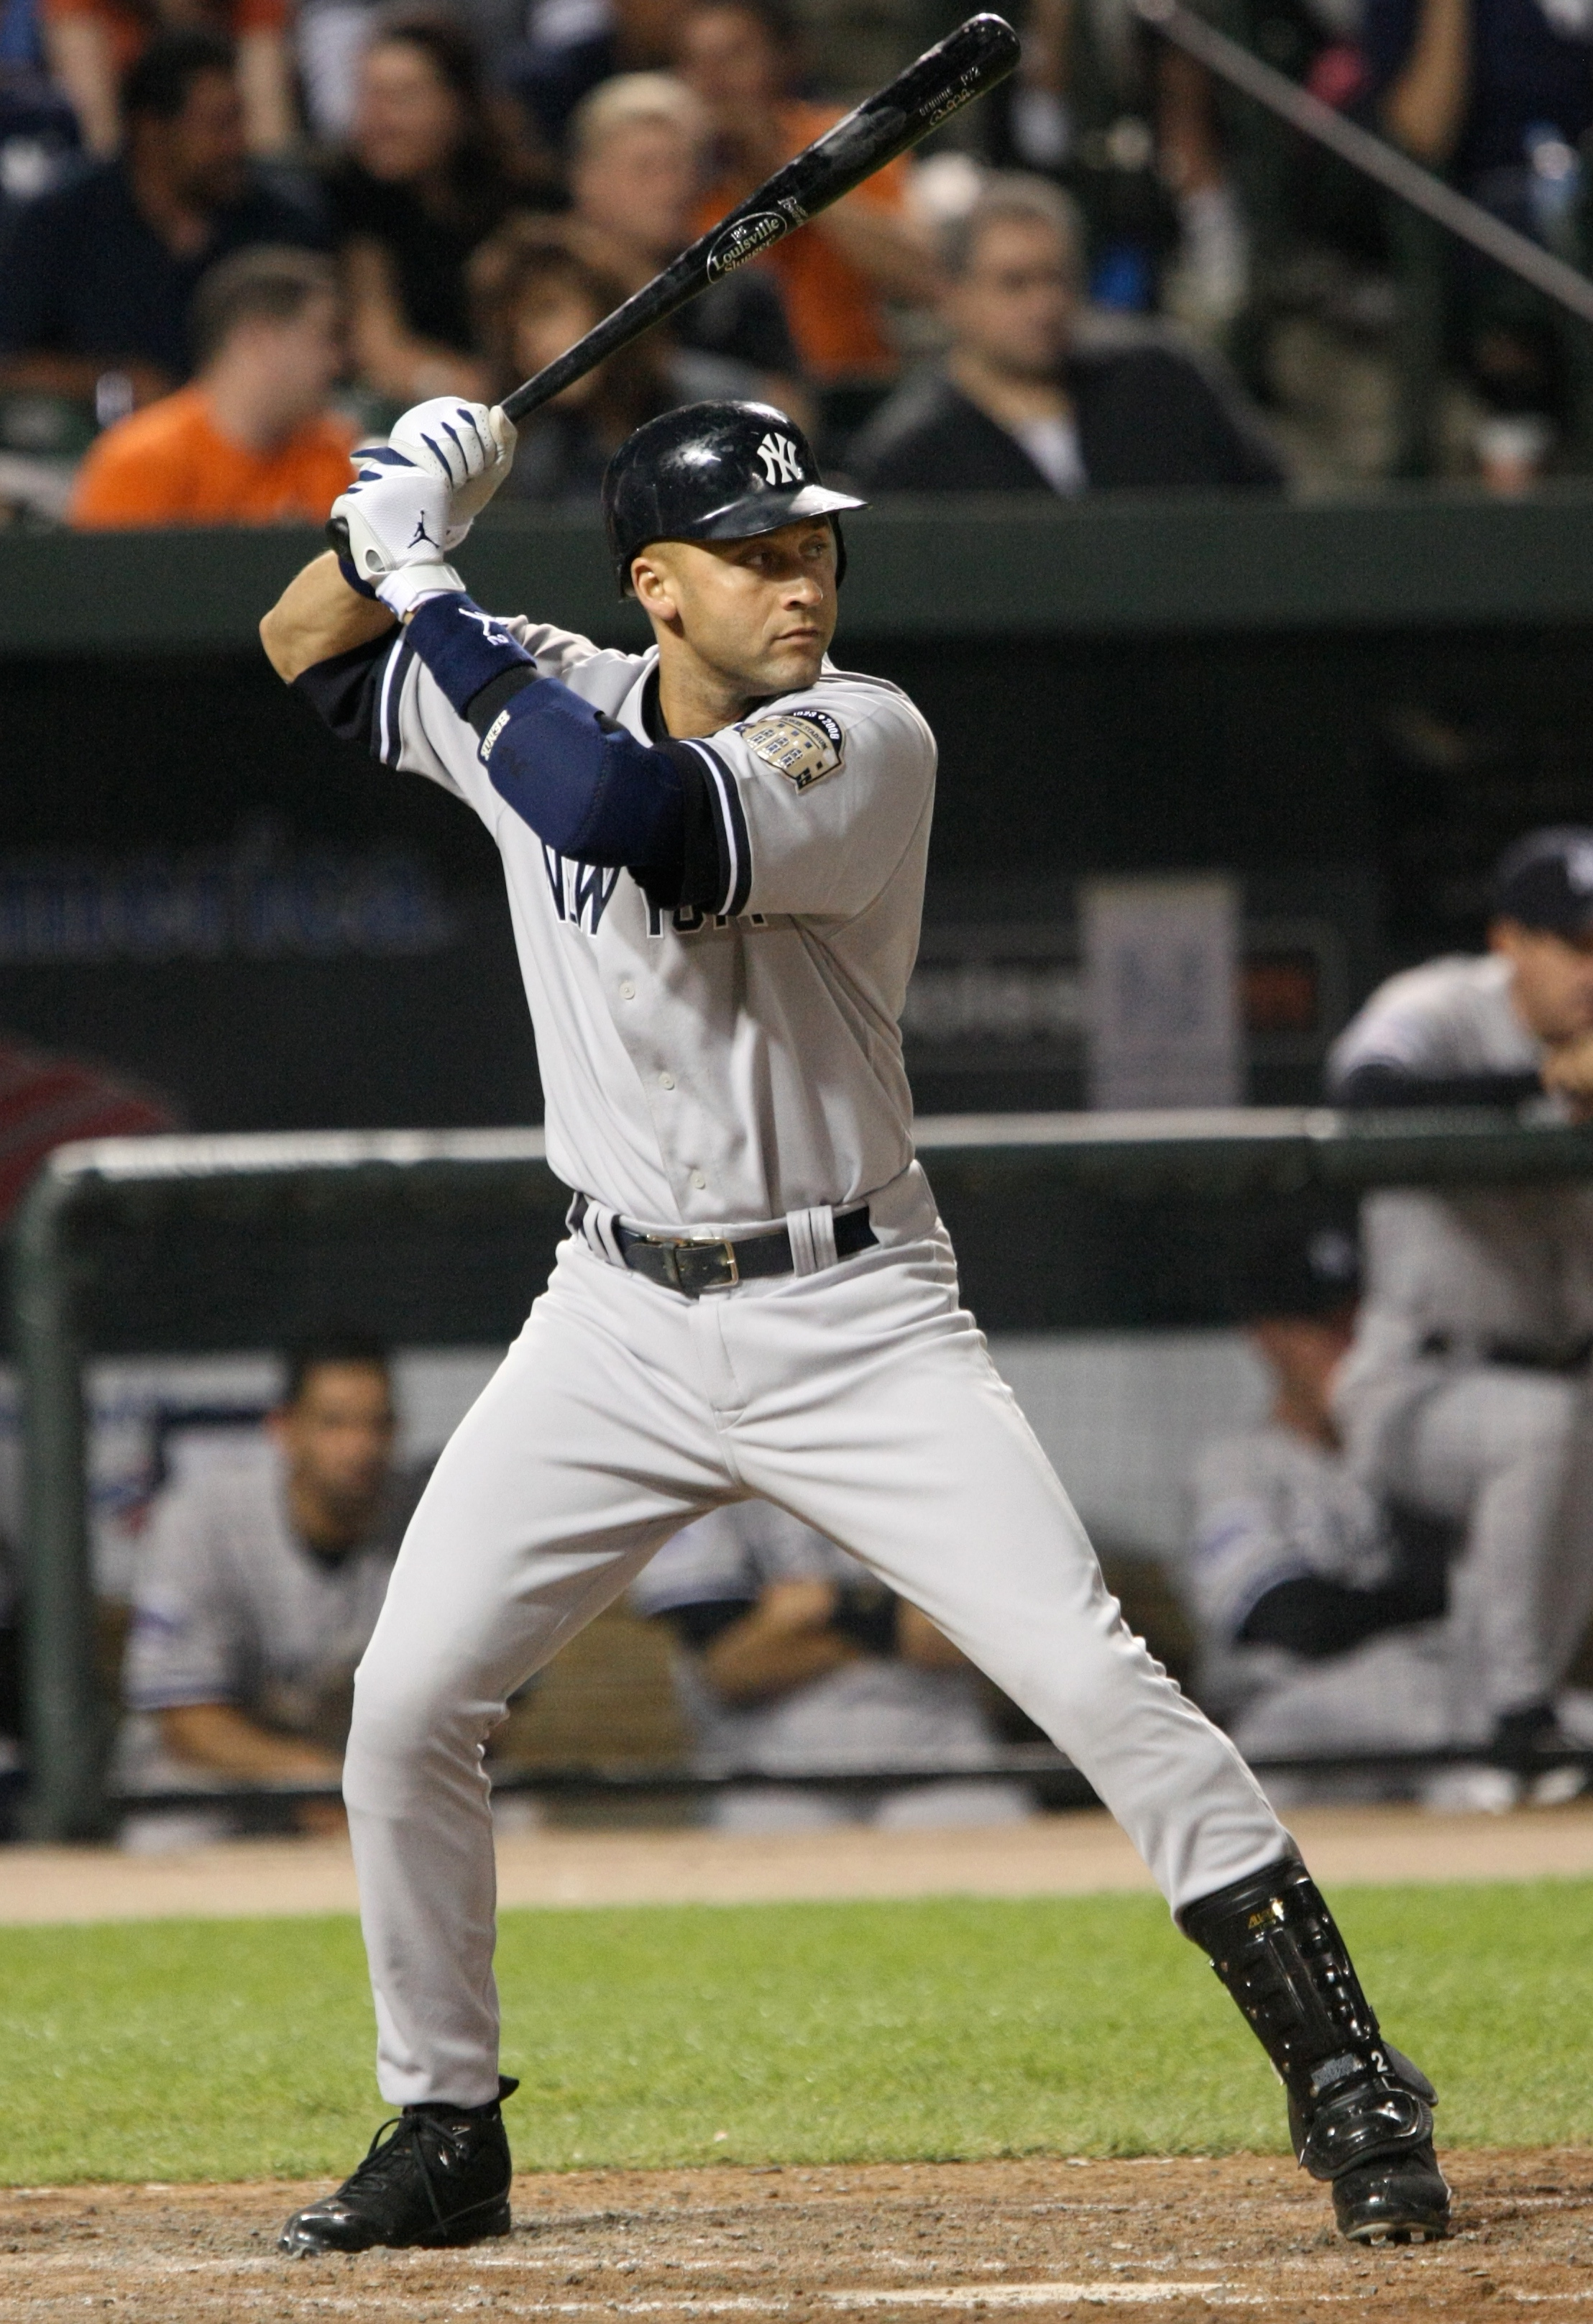 Derek Jeter. A man in a grey baseball uniform with a navy helmet prepares  to swing at a d6583f96a